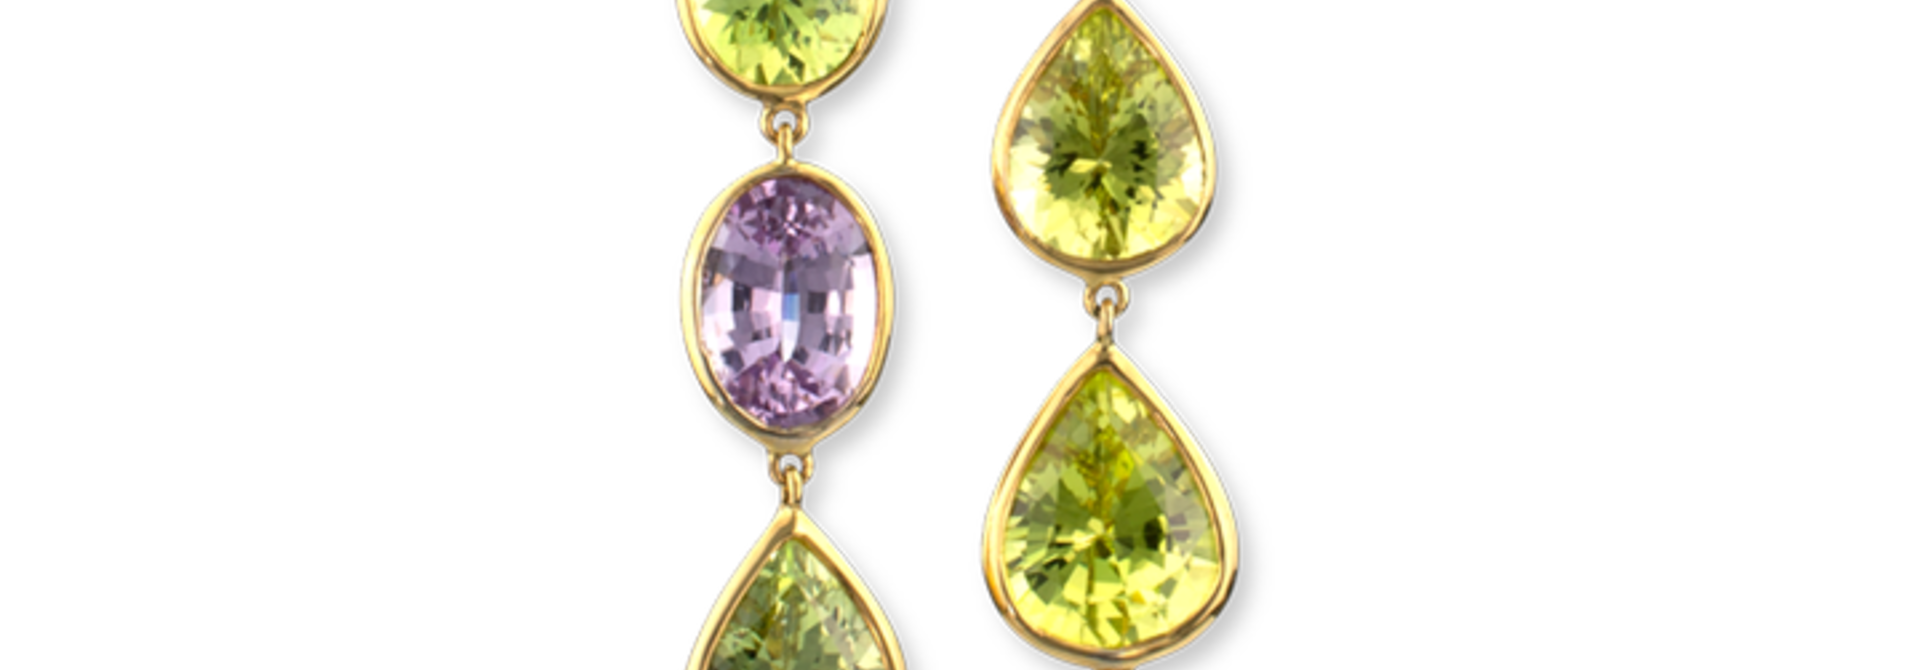 Spinel & Chrysoberyl Earrings